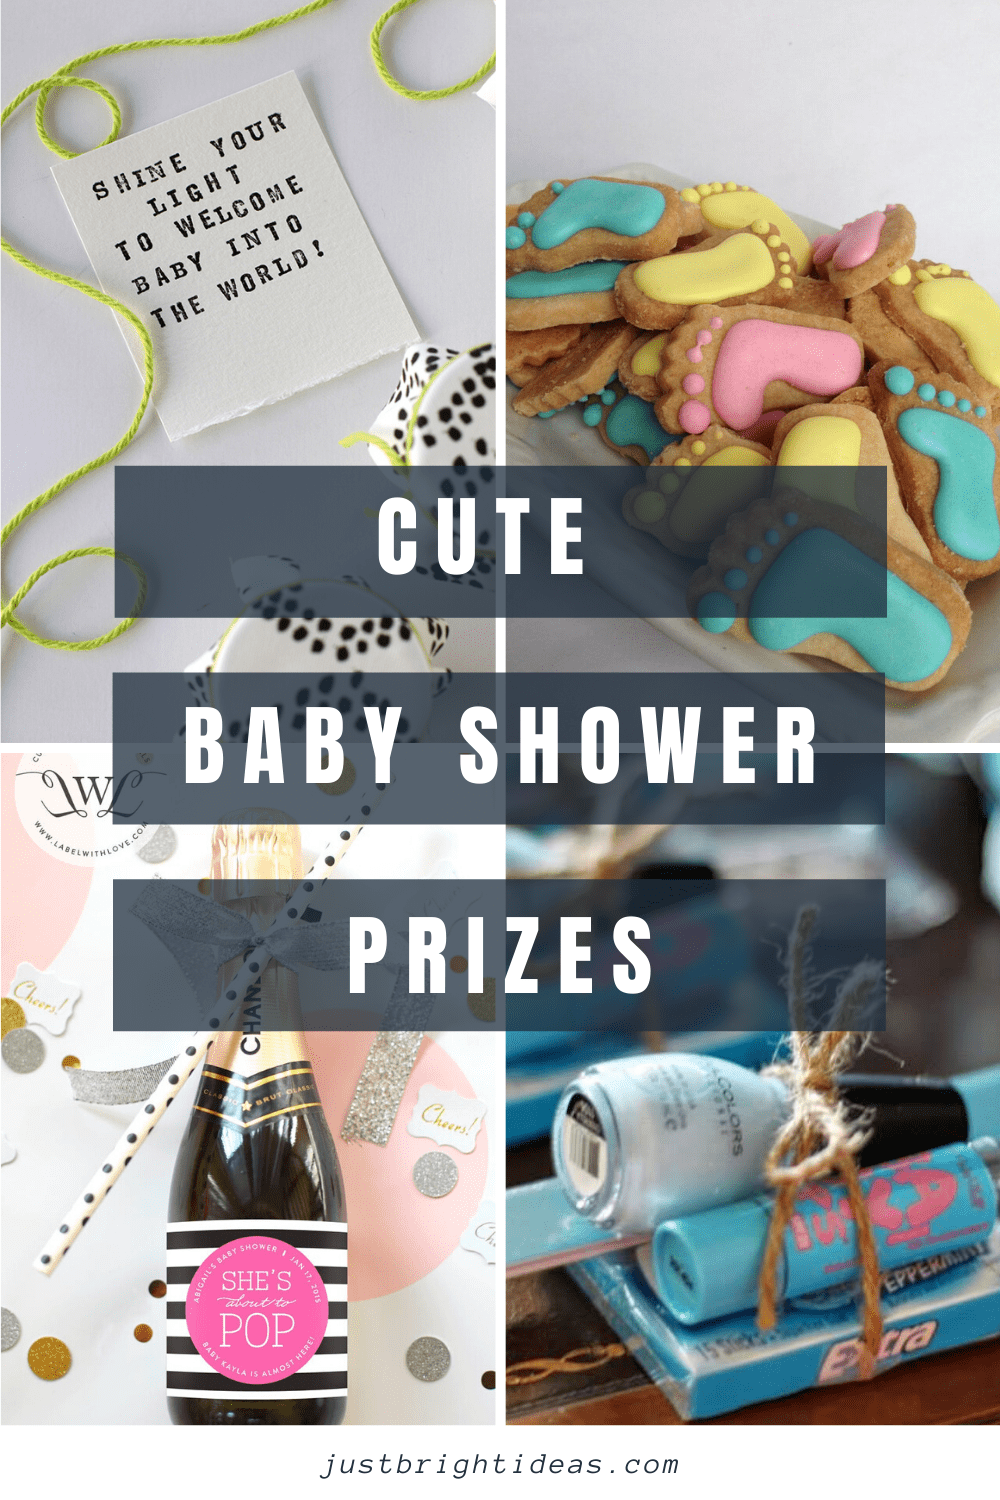 Find out how to make your own cute baby shower prizes your guests will want to use